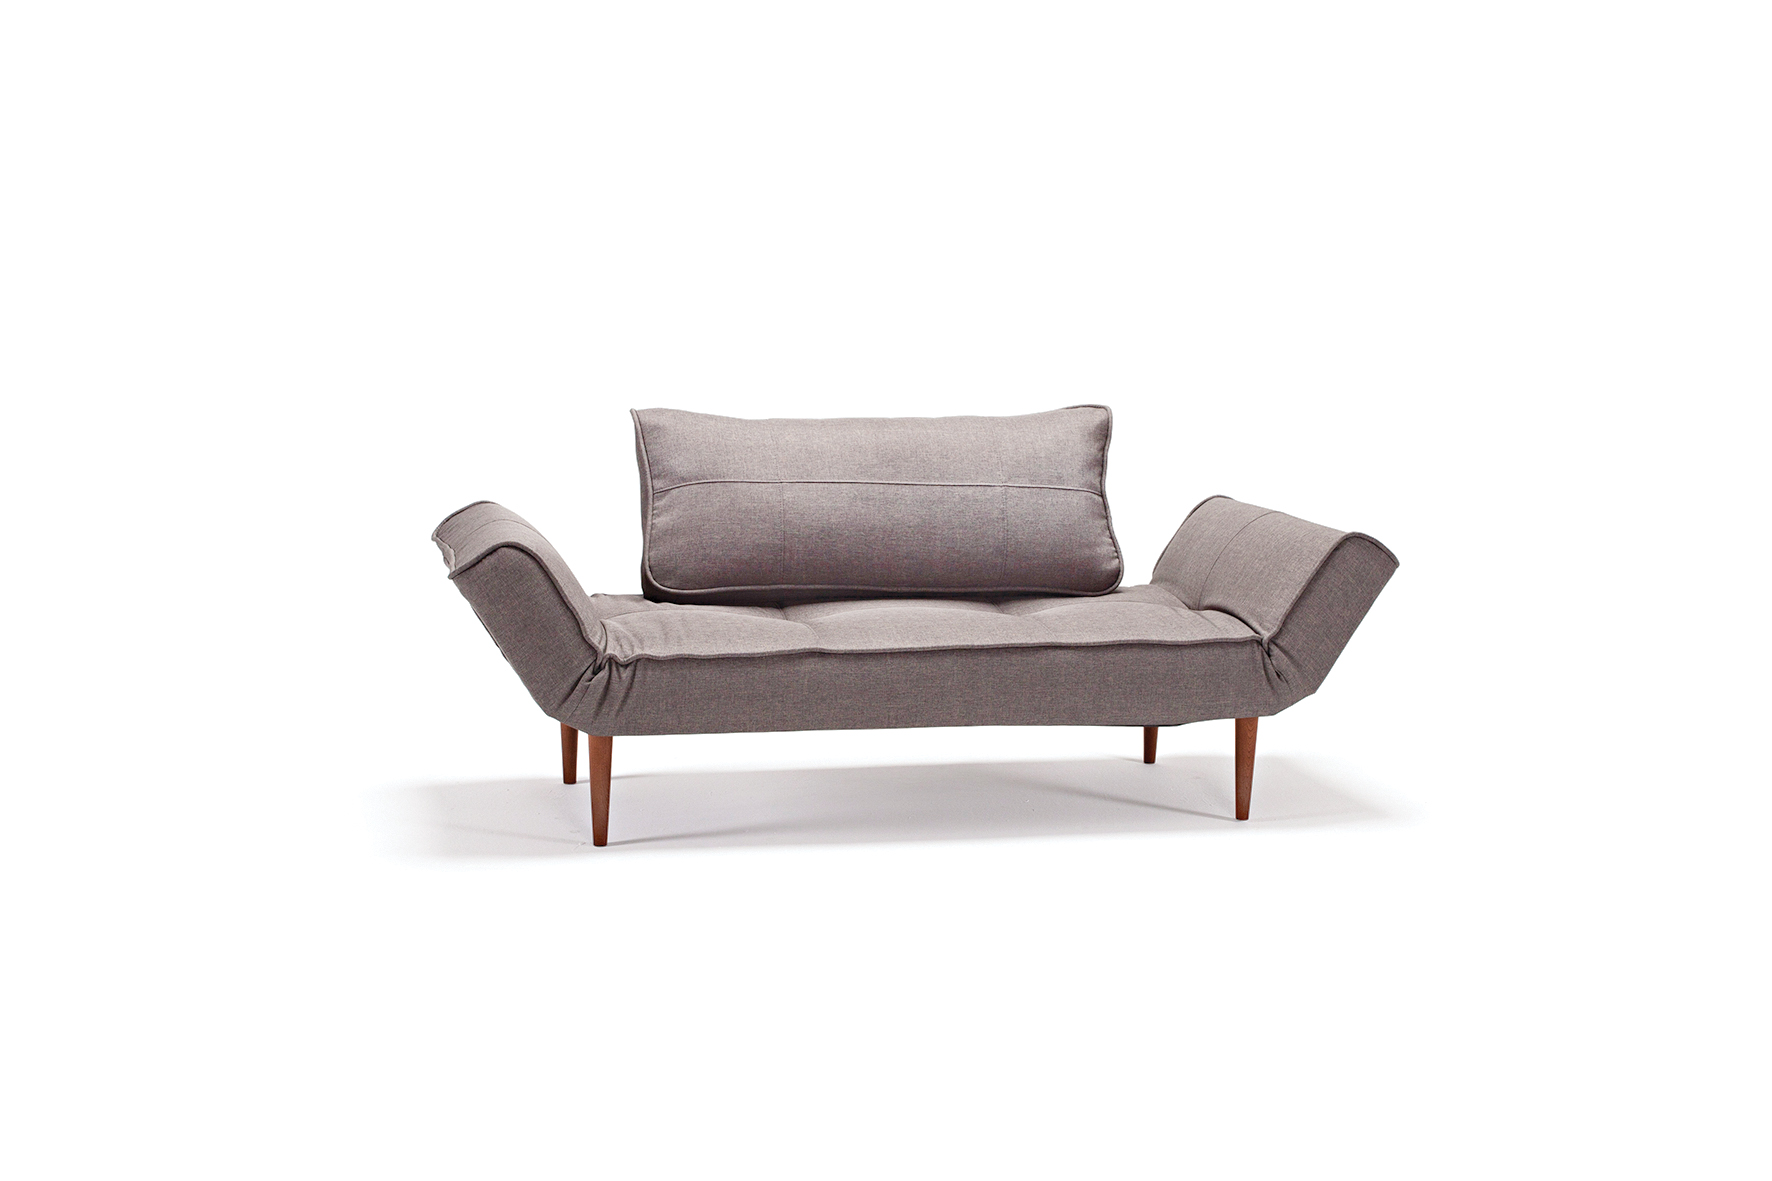 Zeal sofa bed innovation living australia for Zeal sofa bed